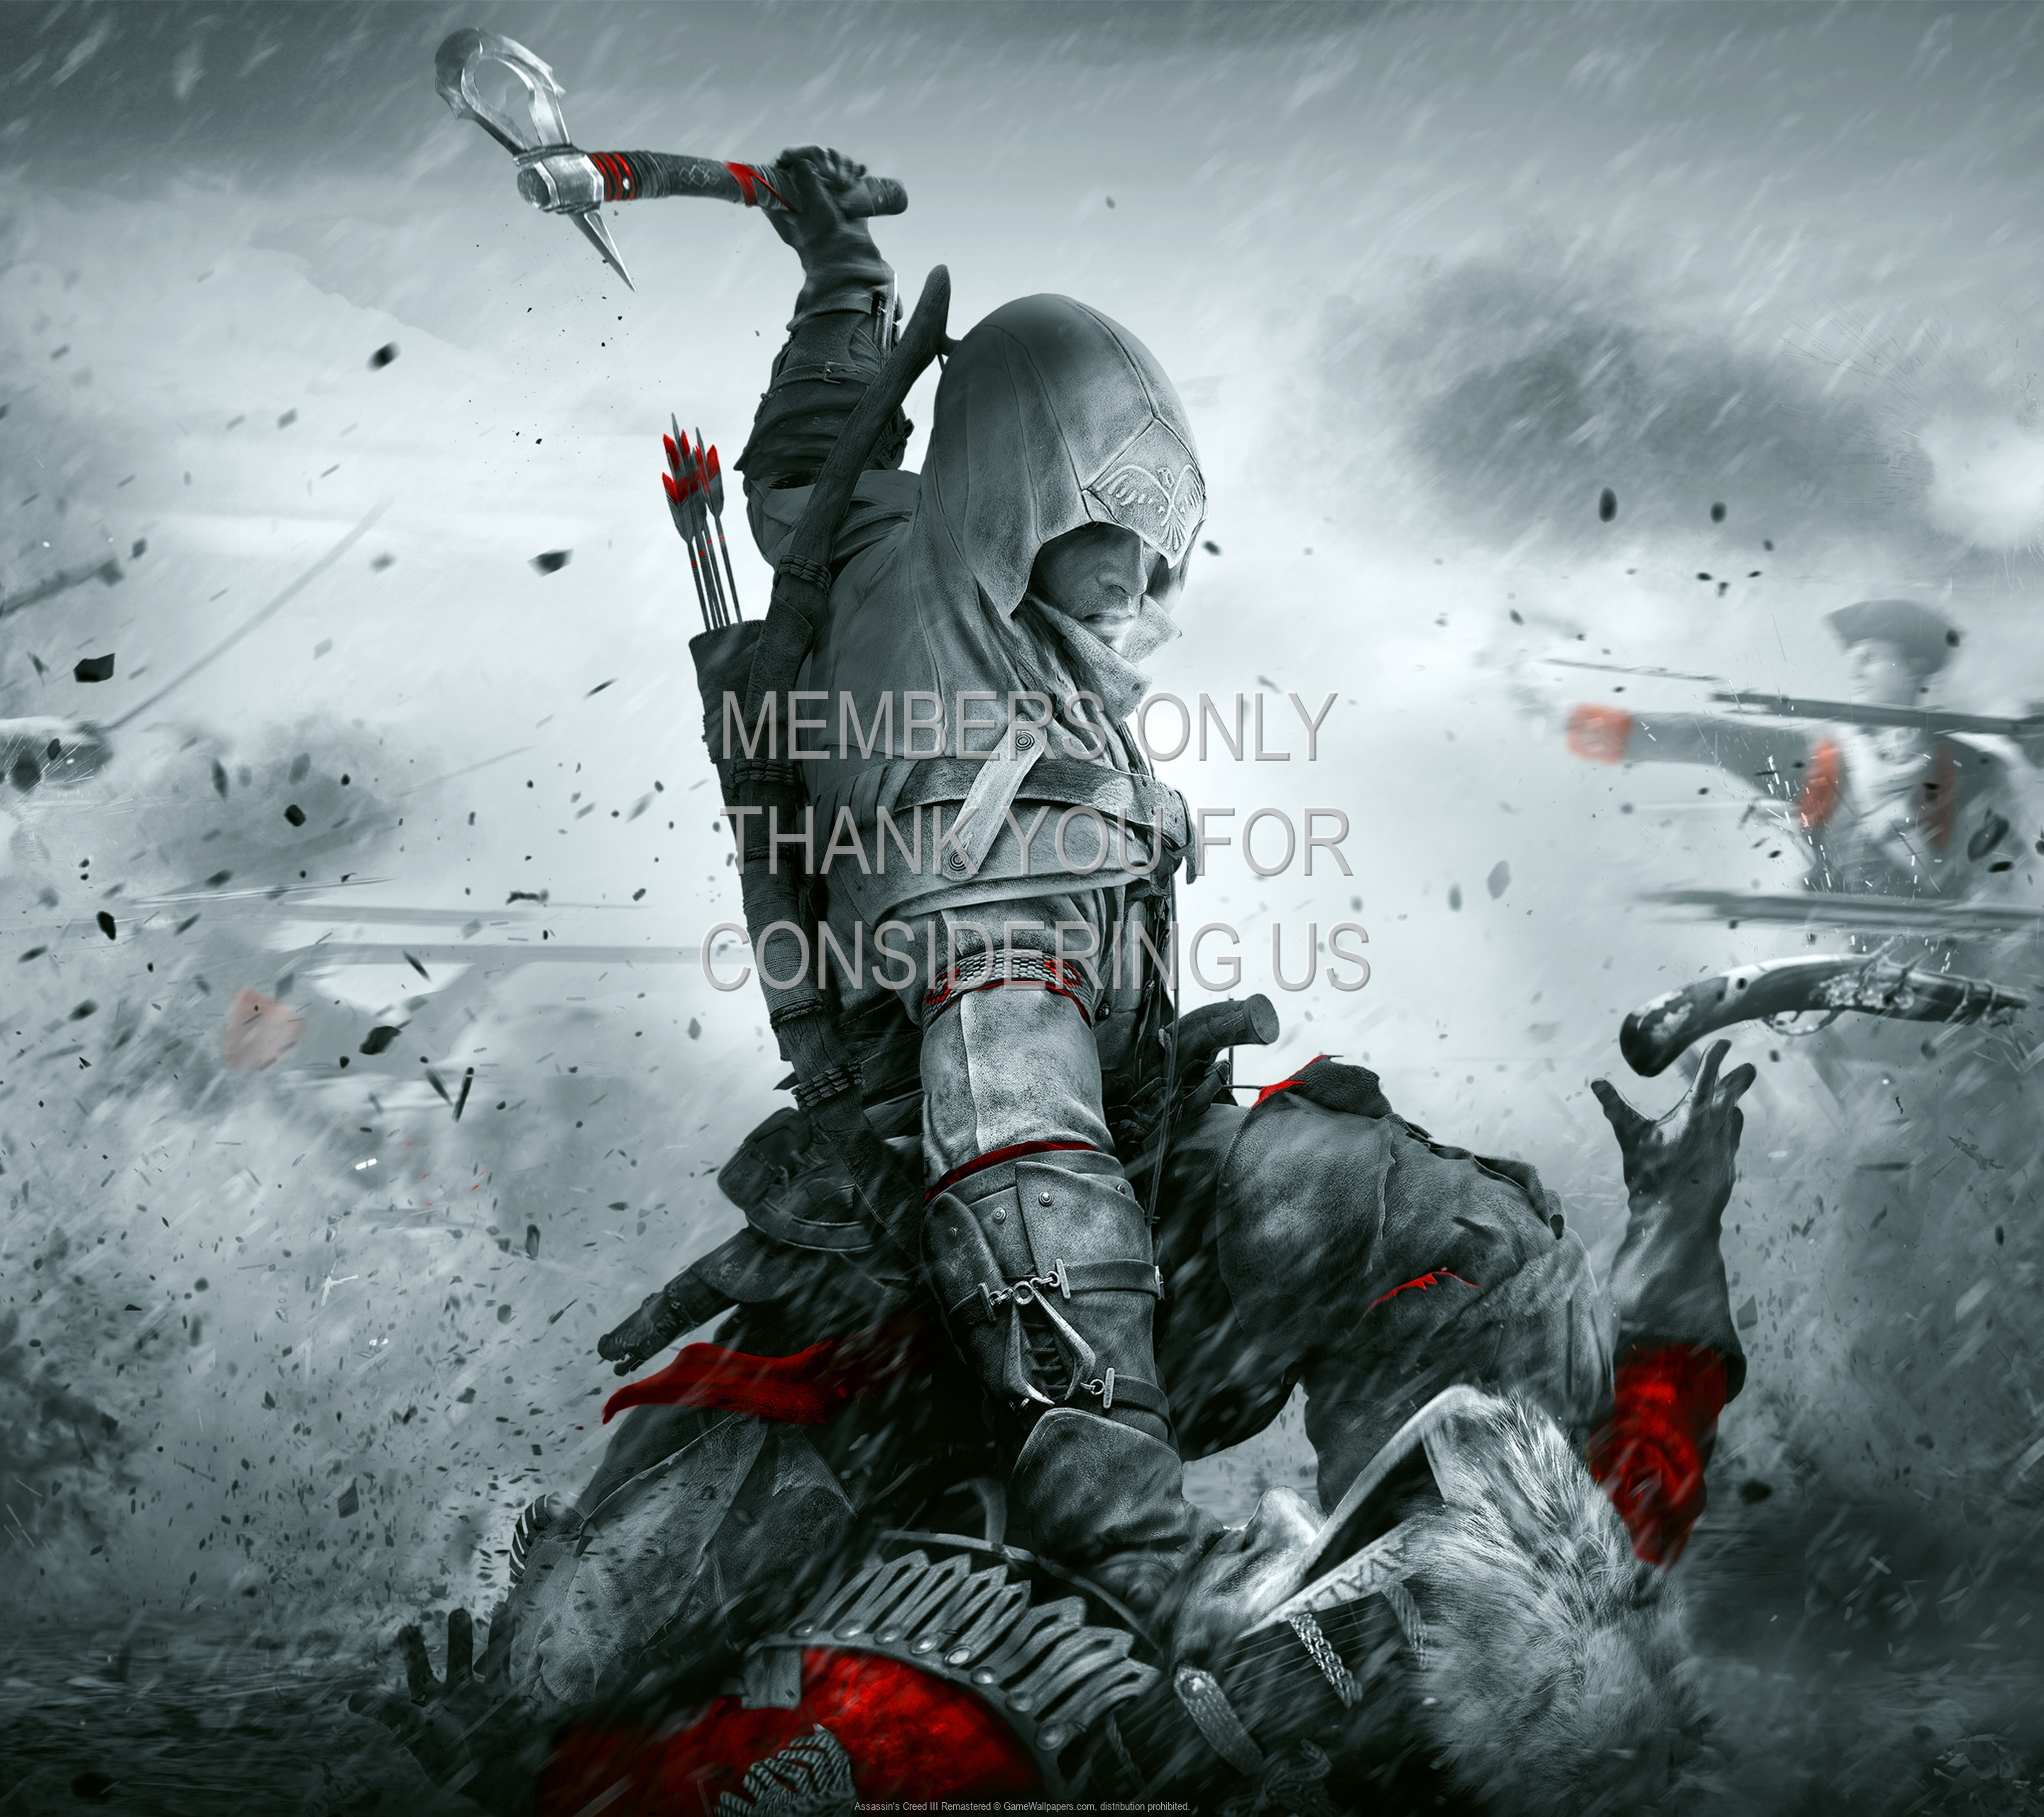 Assassin's Creed III: Remastered 1920x1080 Handy Hintergrundbild 01